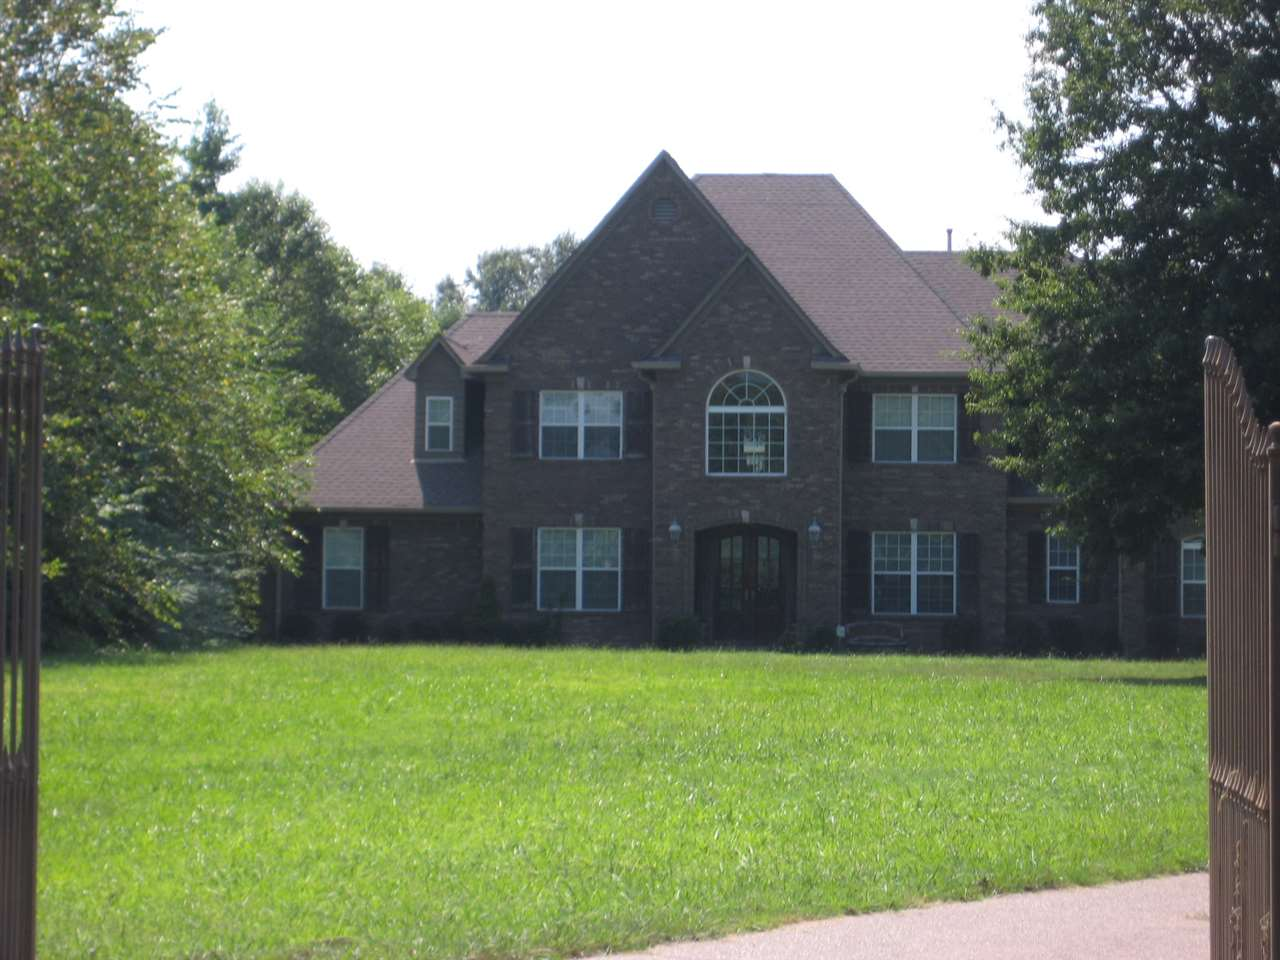 4495 Planters Trace Collierville, TN 38017 - MLS #: 10007848